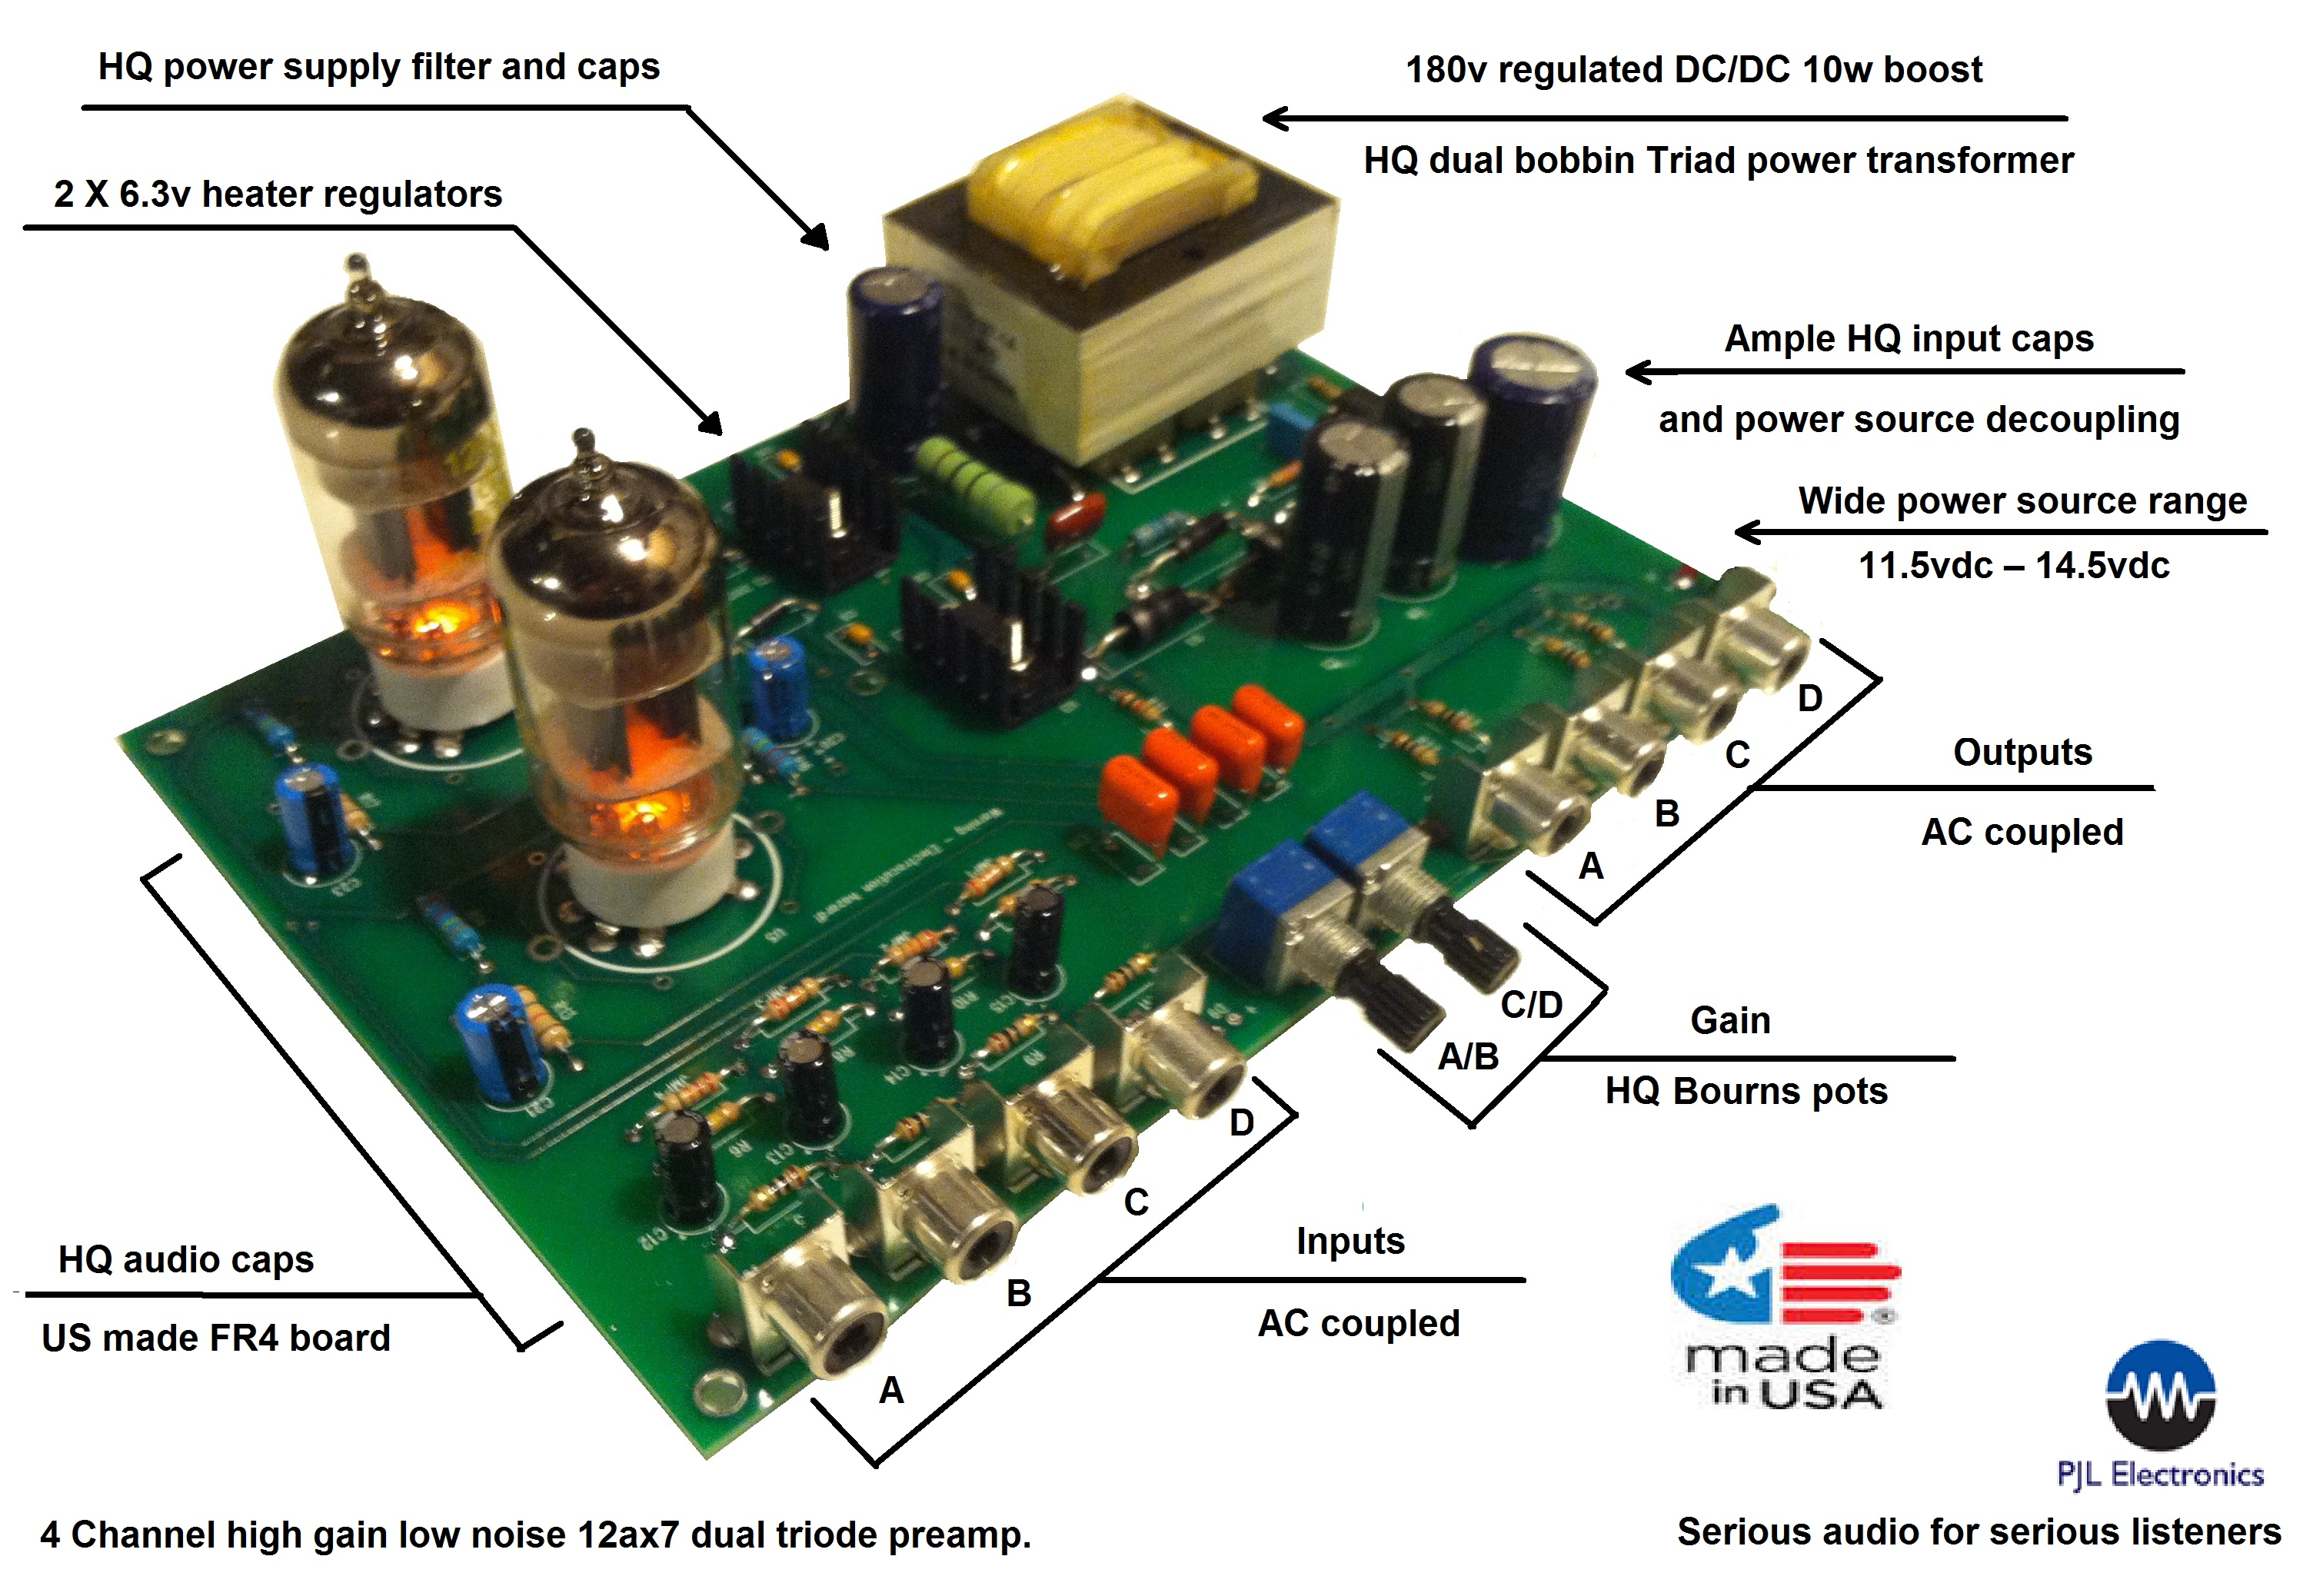 4 Channel 12ax7 Tube Preamp Buffer Pjl Electronics Power Supply Circuit For Low Noise Audio